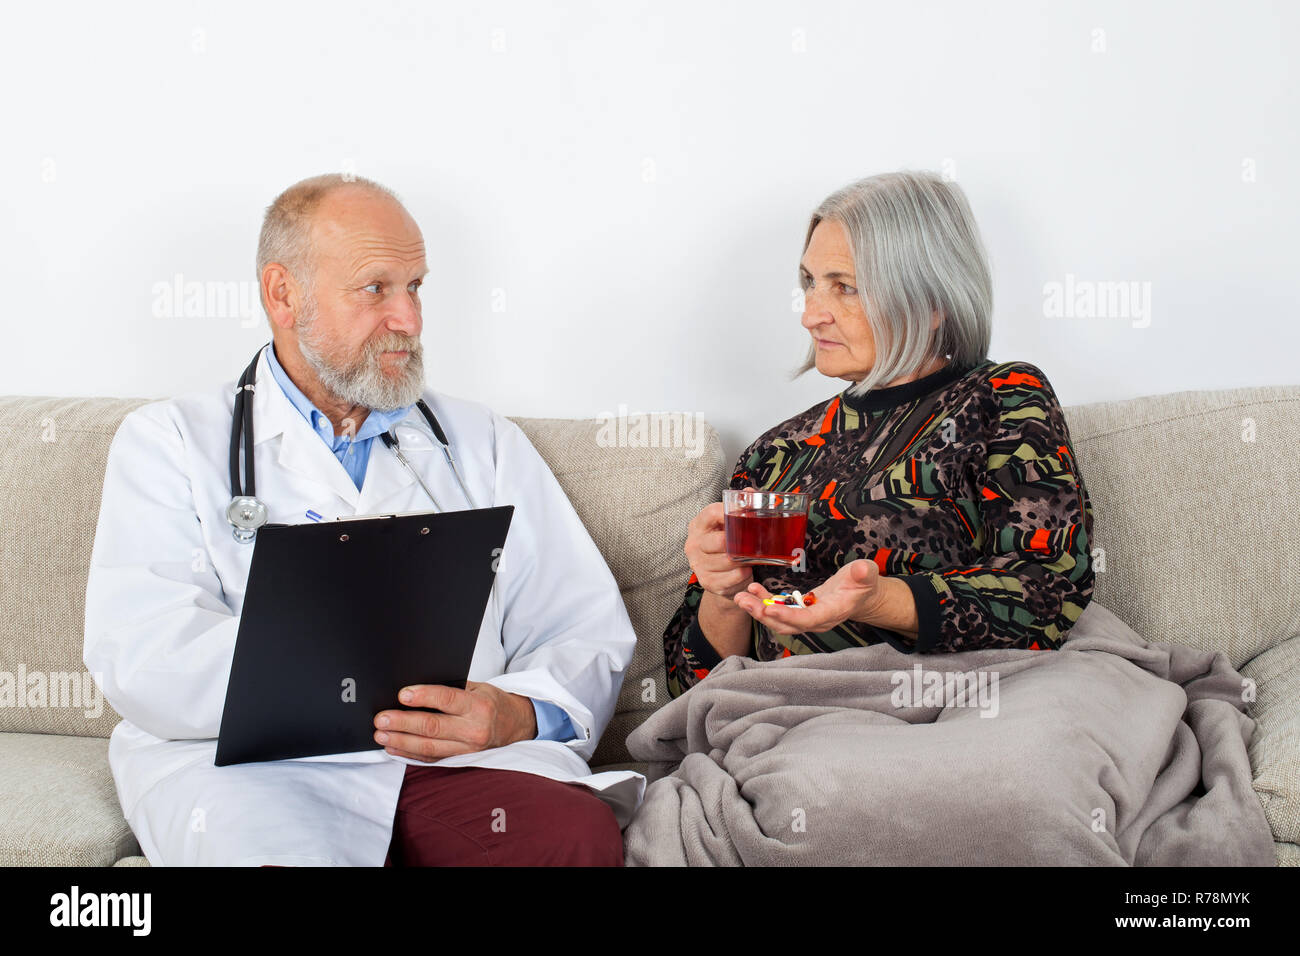 Doctor with clipboard diagnosing an elderly patients at home - Stock Image